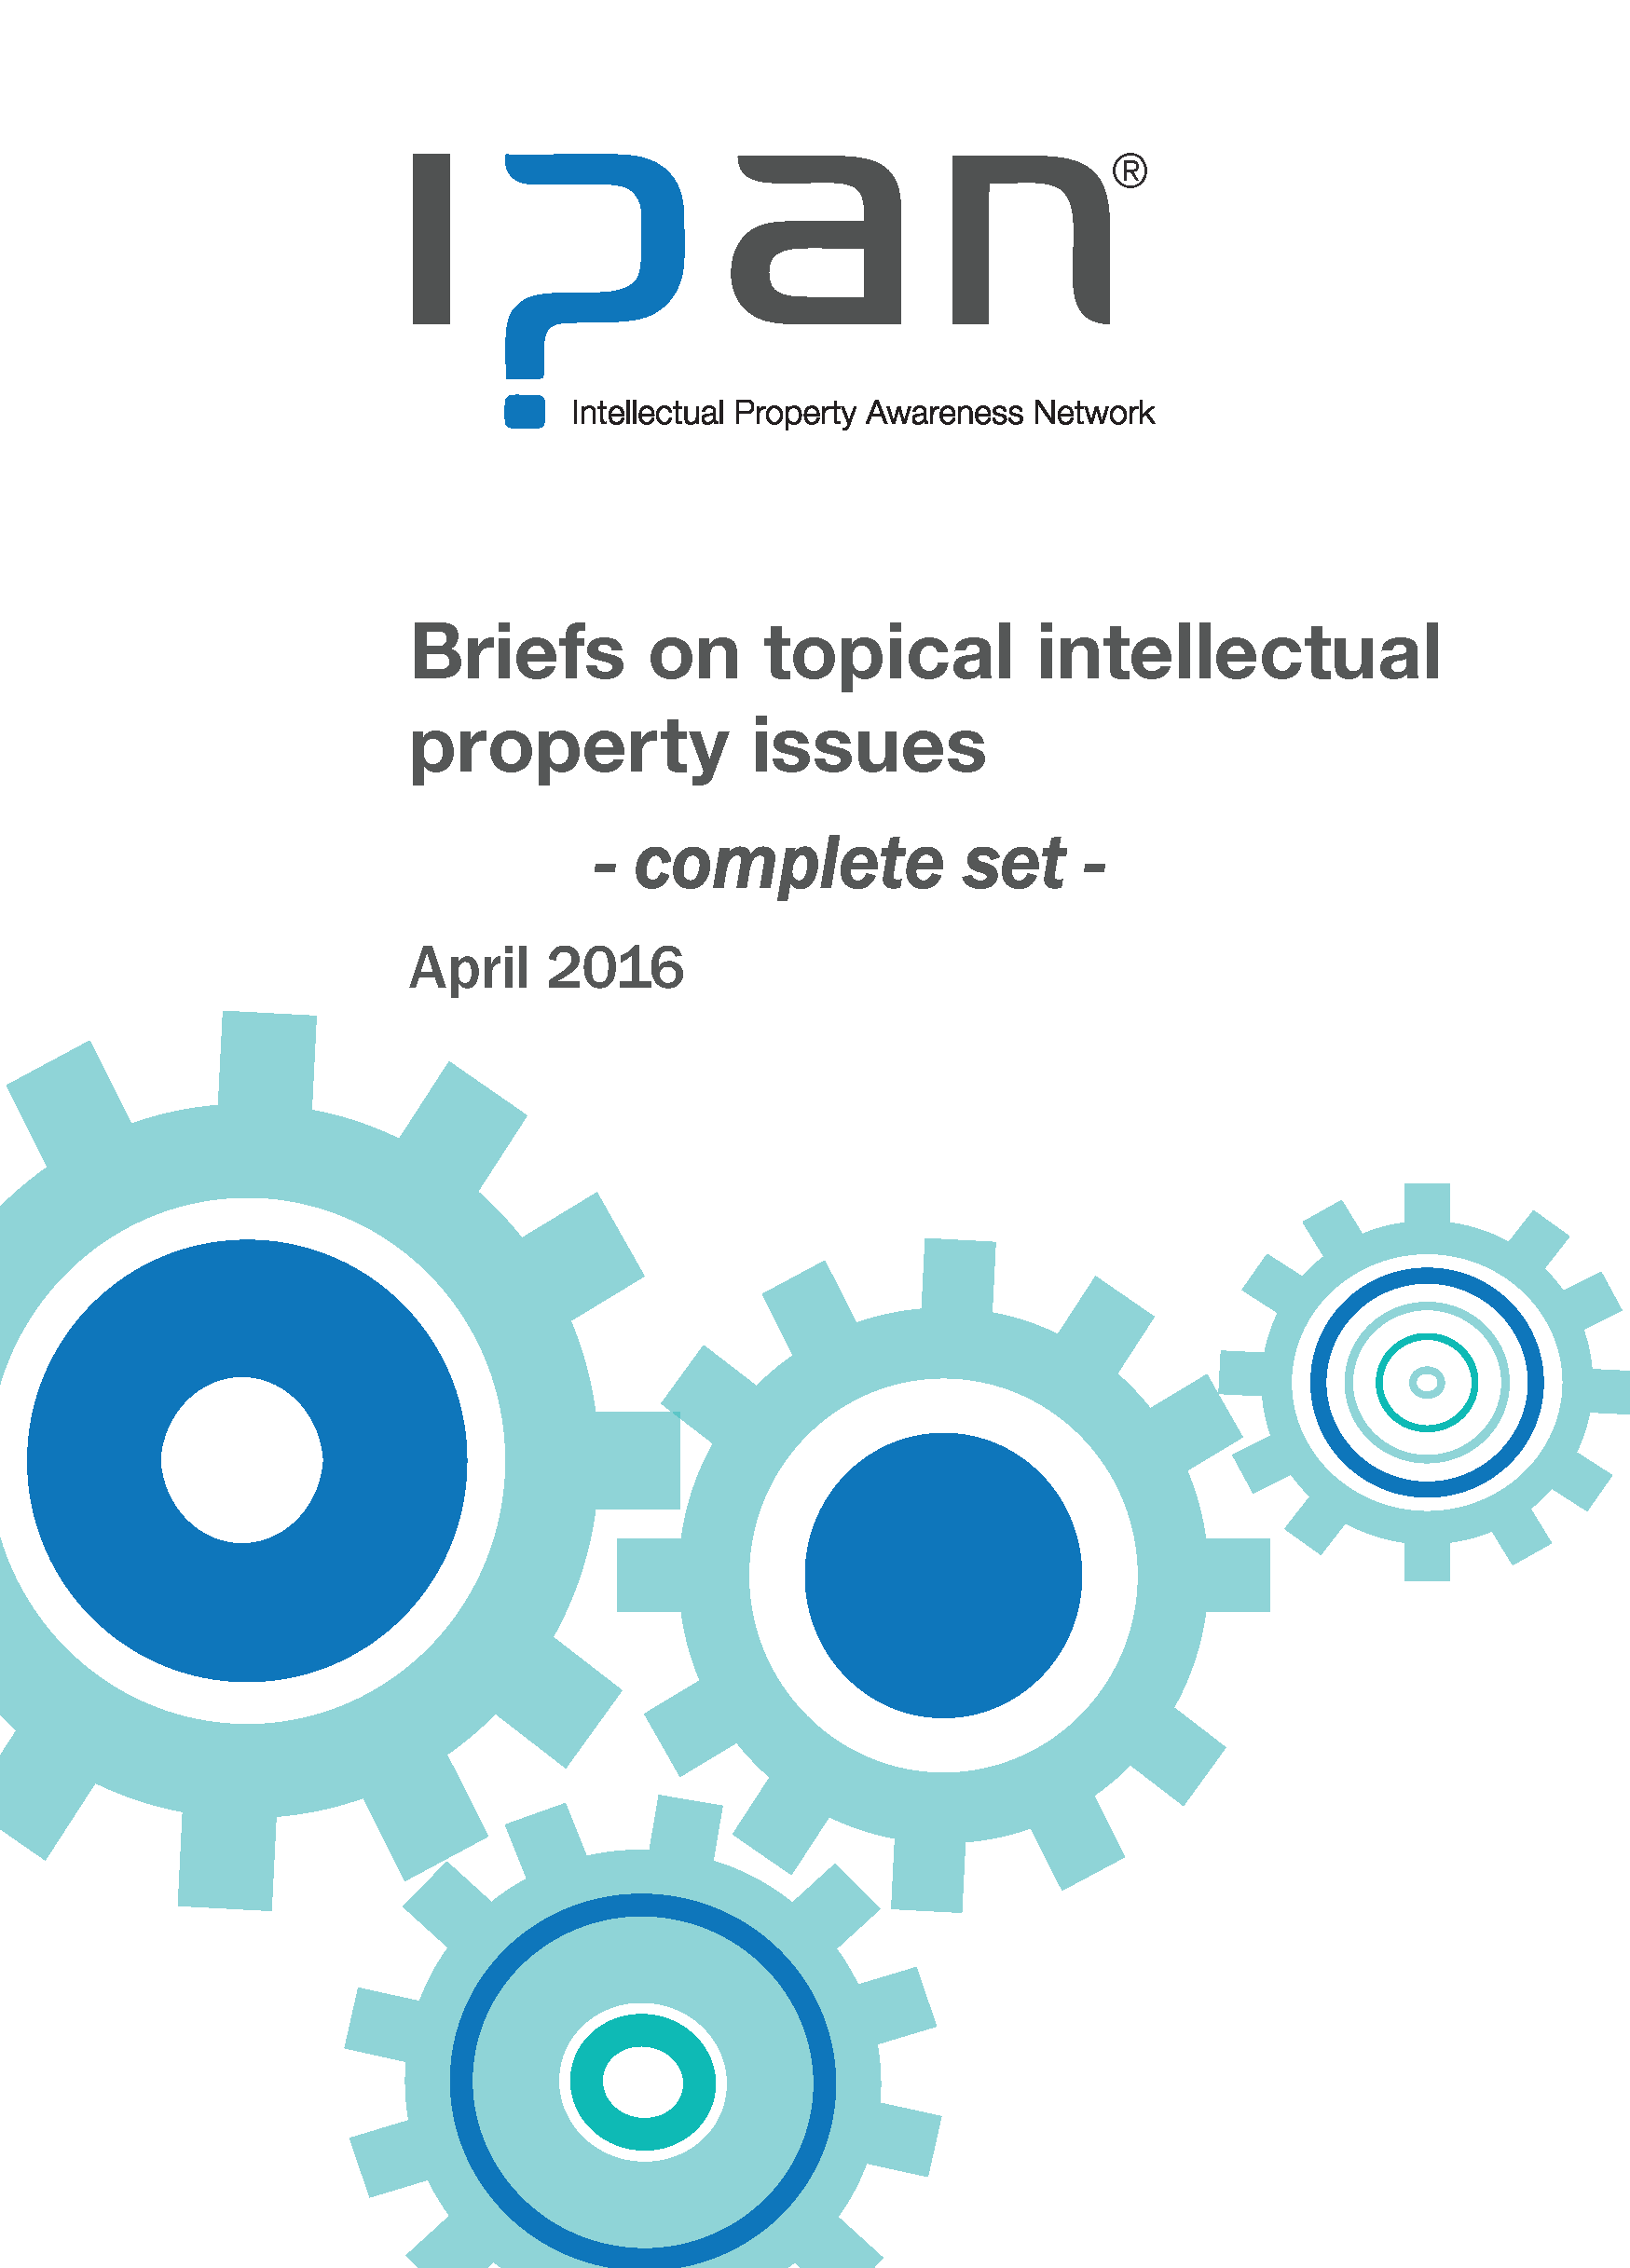 Topic briefs - full set